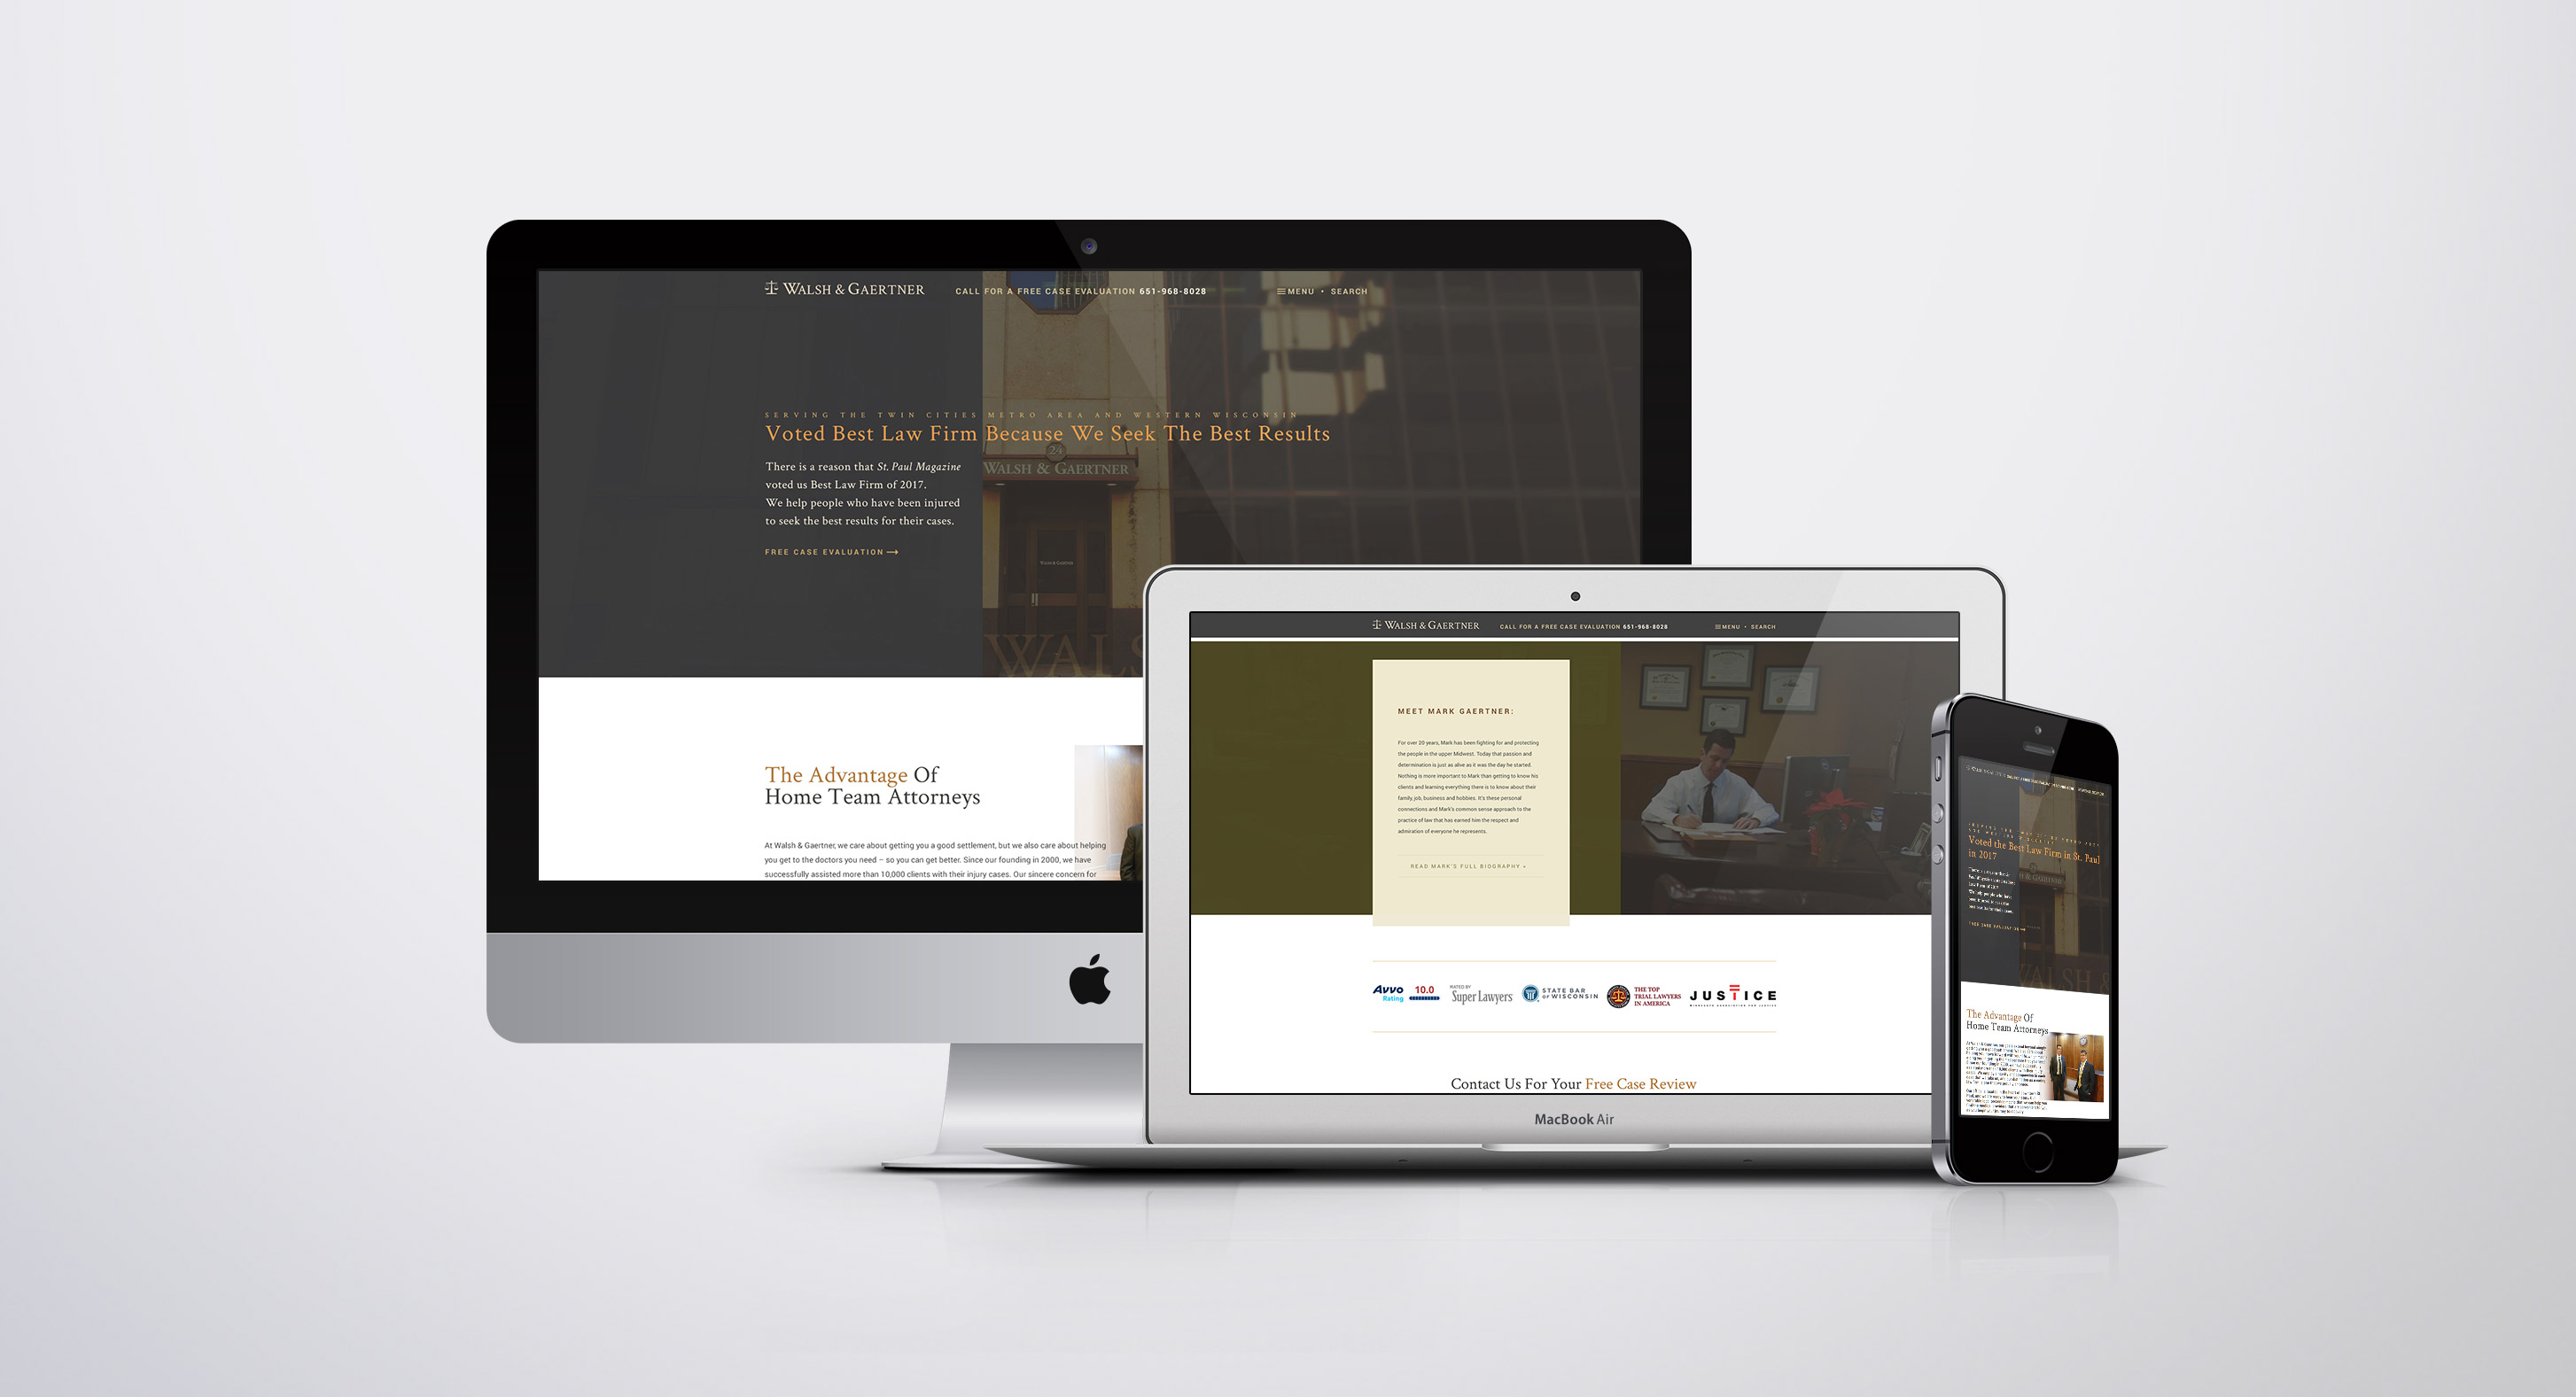 composite photo of the updated Walsh and Gaertner website in multiple device formats.